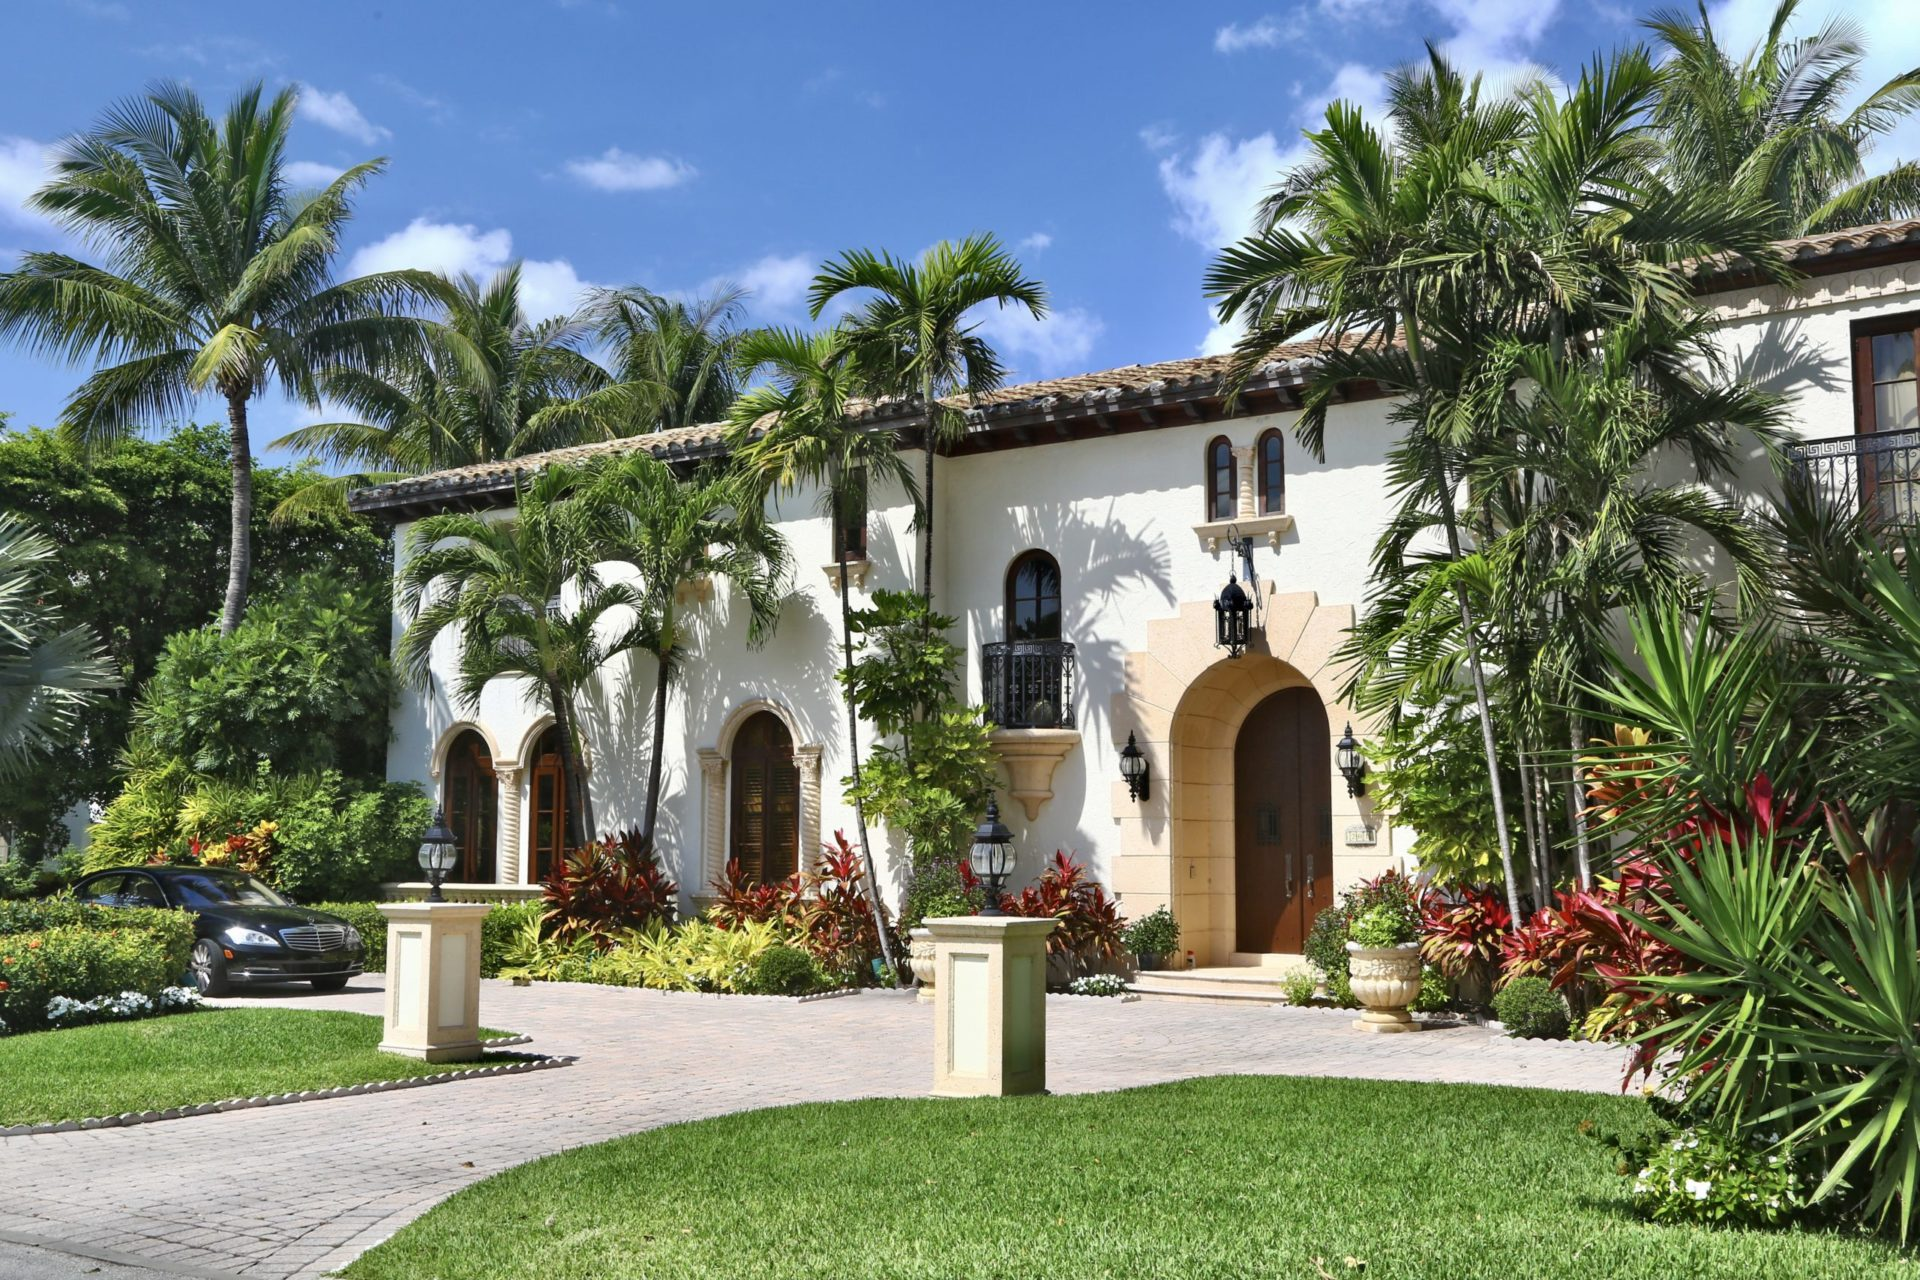 Palm Beach, Florida, USA - March 15, 2014: Wonderful mansion in spanish style. No people.